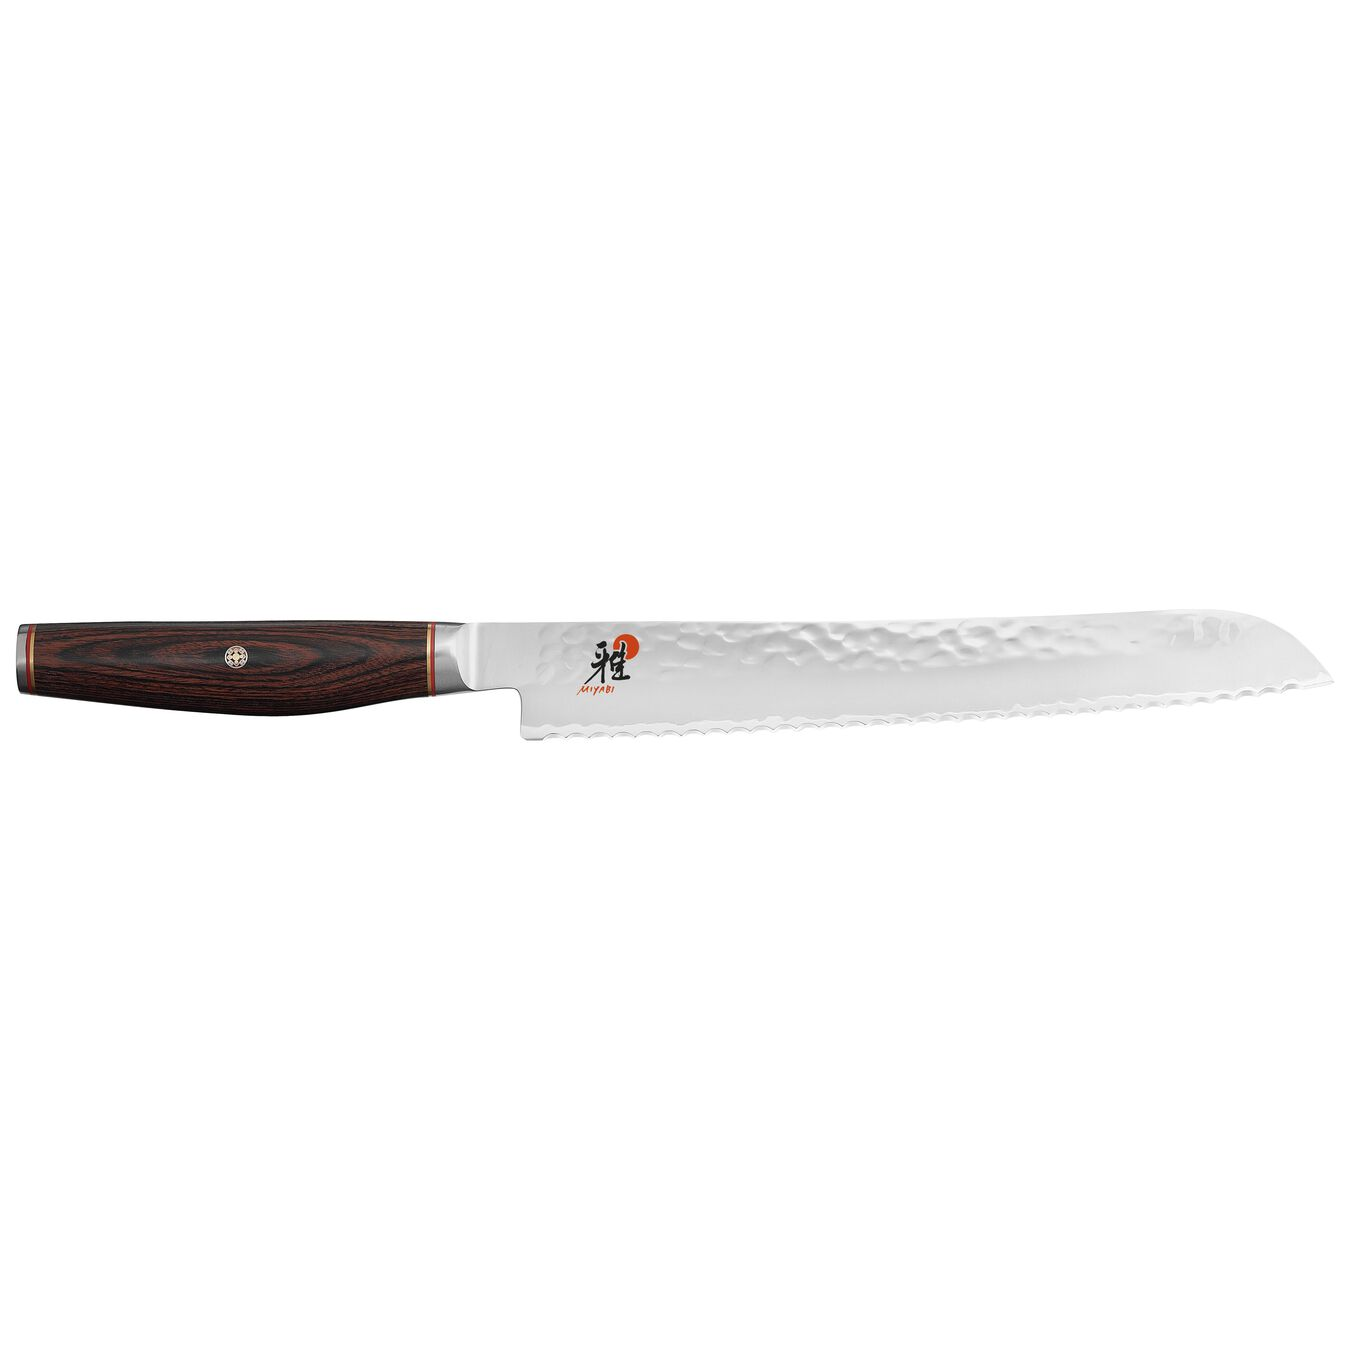 9 inch Bread knife,,large 1